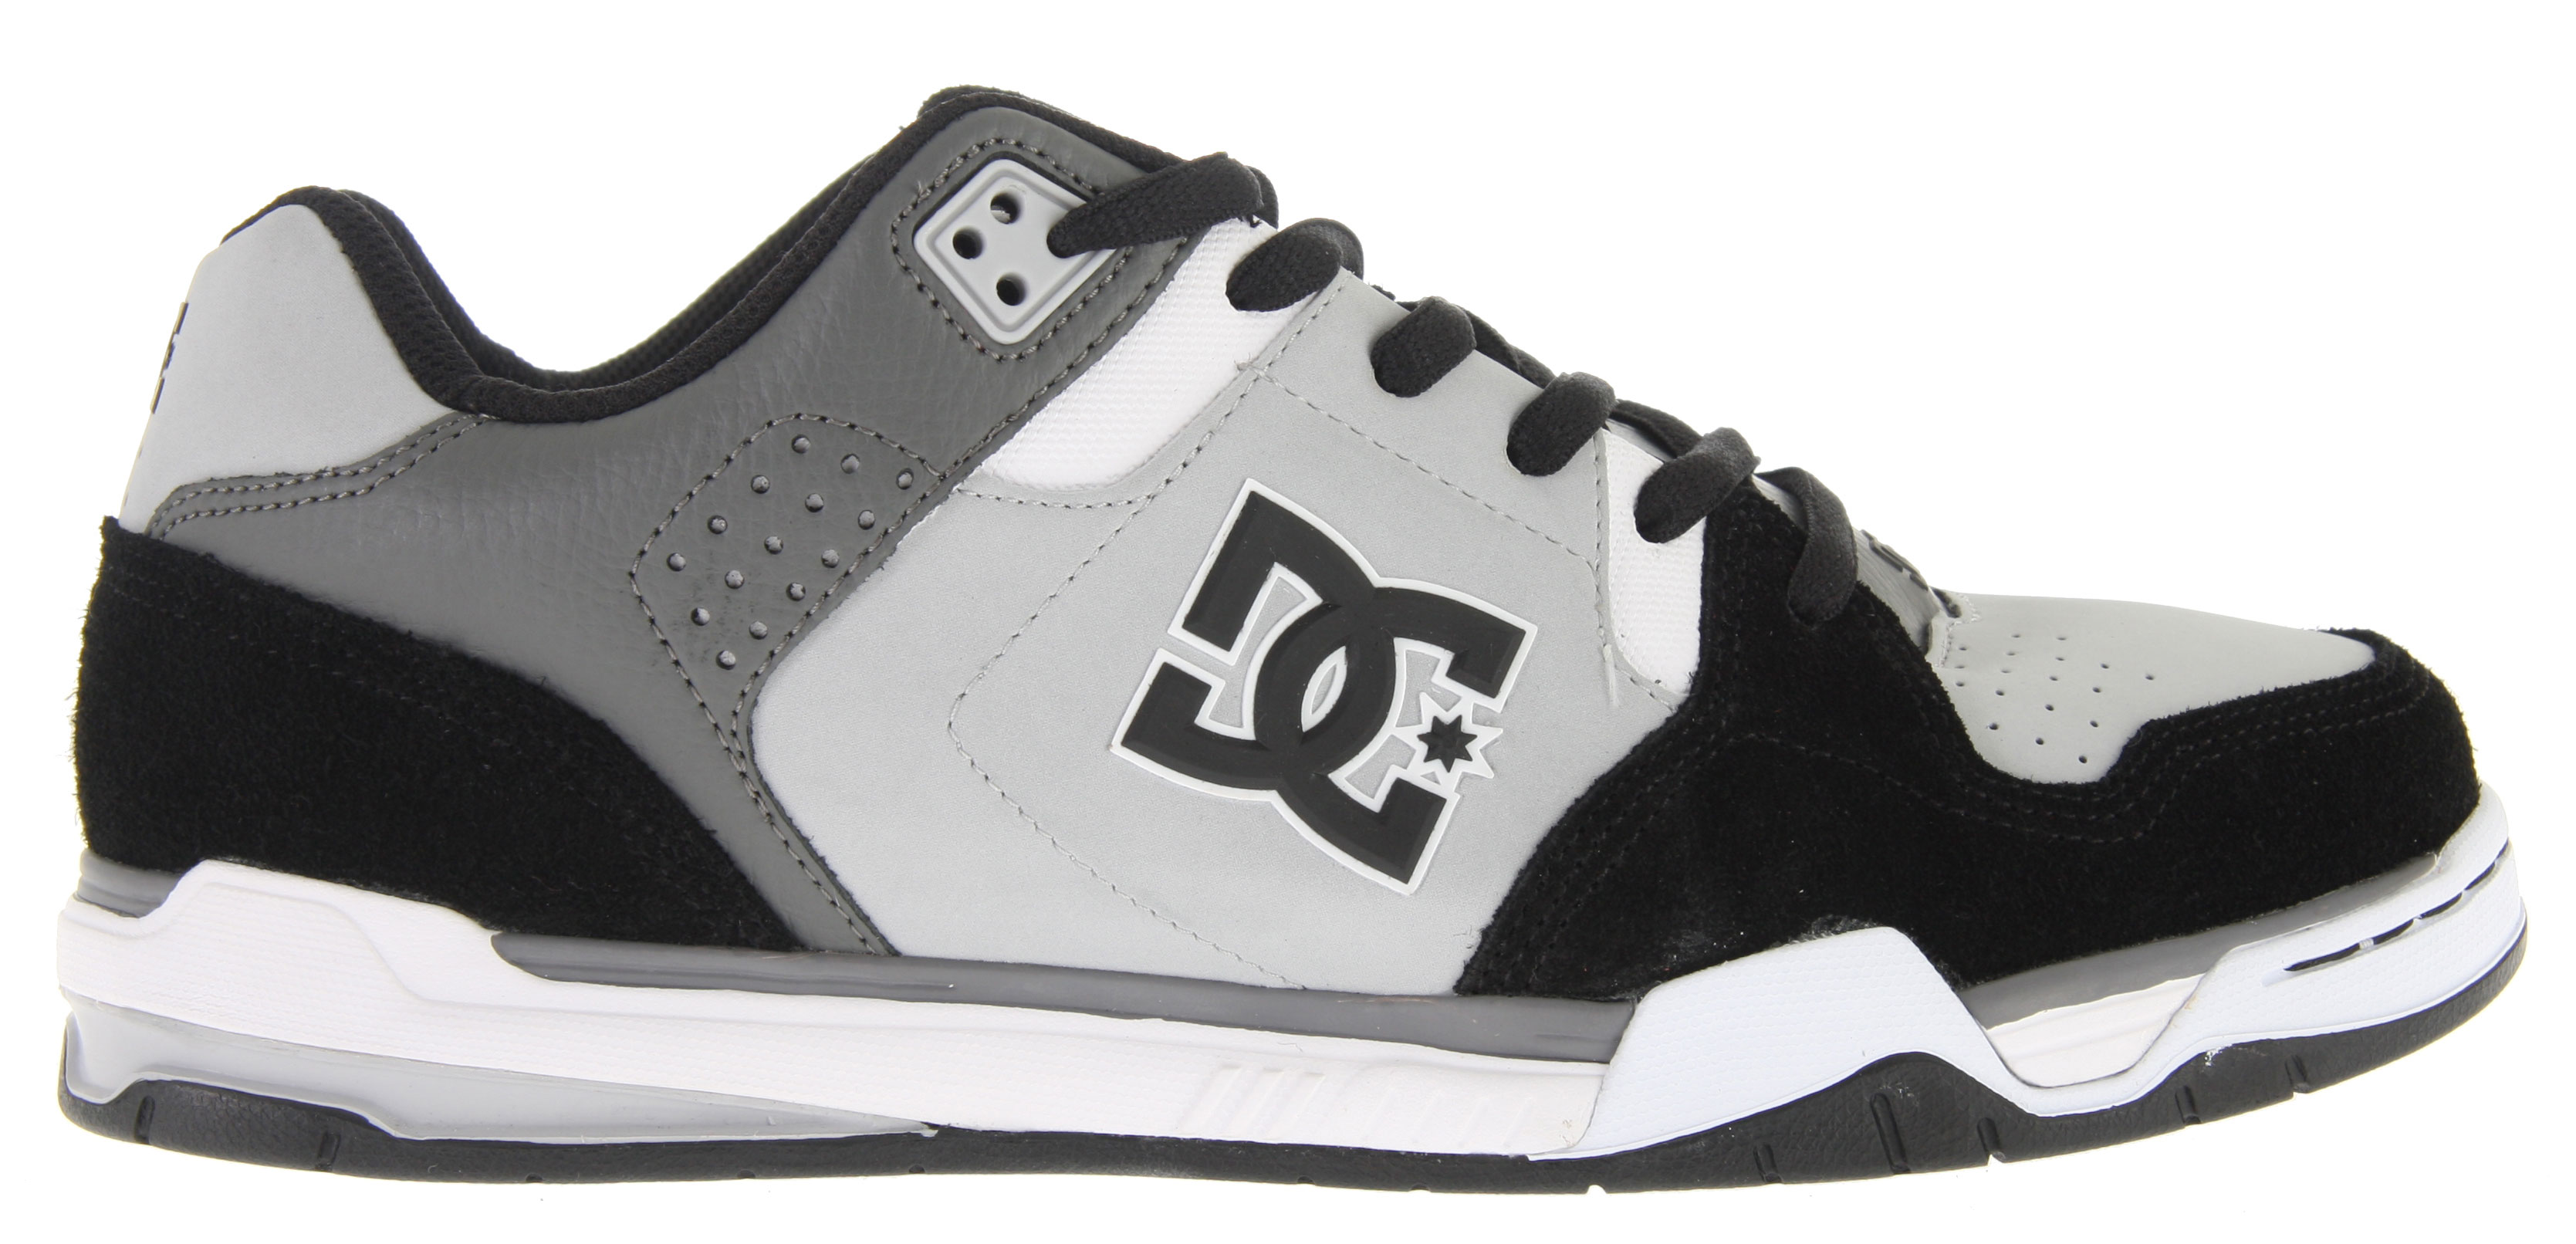 Skateboard Key Features of the DC Decibel Skate Shoes: Heavy-Duty Suede Upper Perforated Upper Panel TPU Eyelets Foam-Padded Tongue and Collar Lightweight Mesh Tongue Performance Wrap Cup Sole Lightweight Molded EVA Midsole Abrasion-Resistant Sticky Rubber Outsole with DC's Trademarked Pill Pattern - $44.95